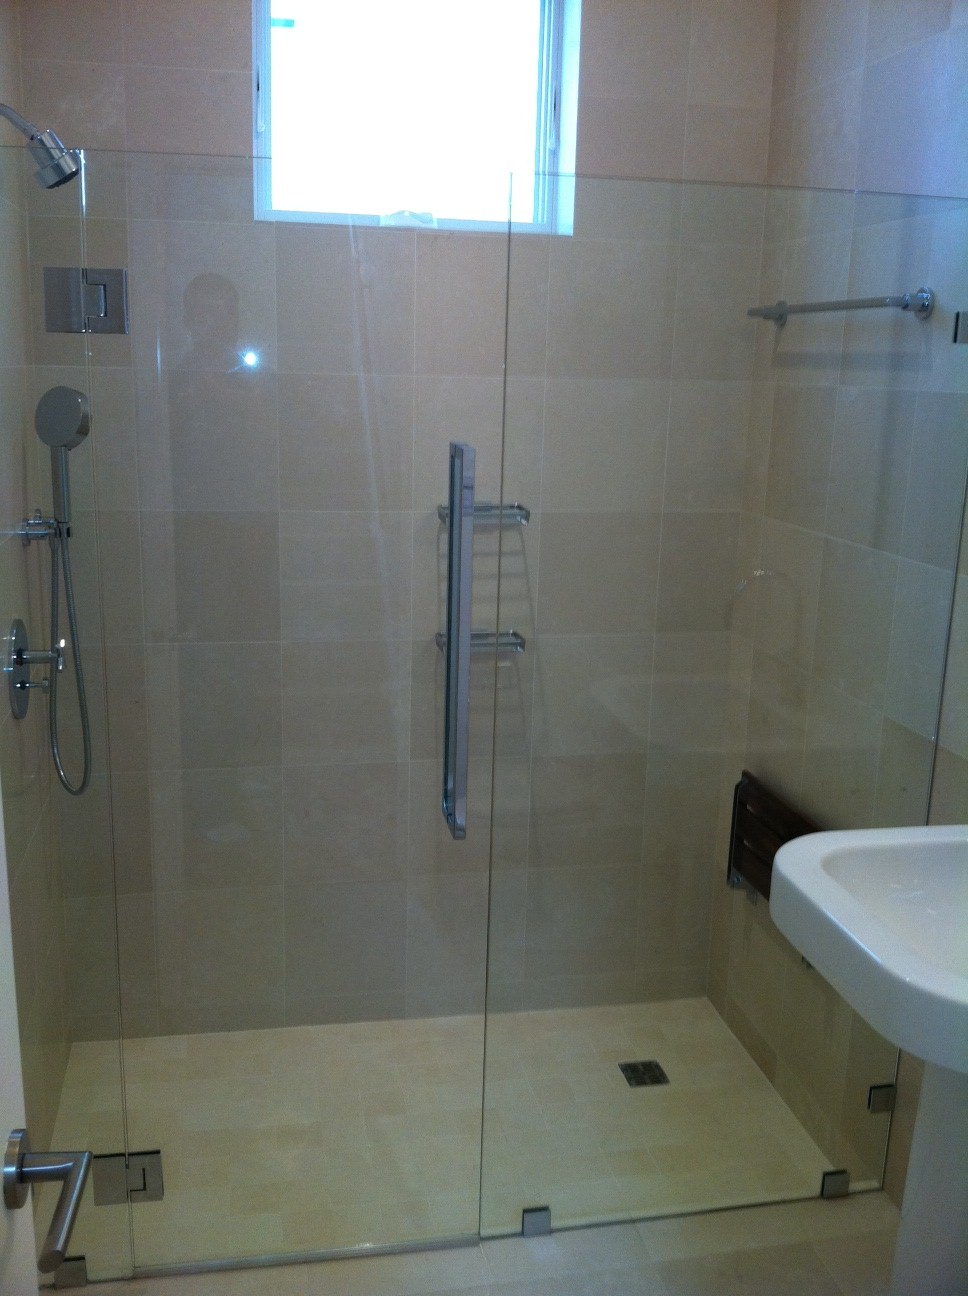 Frameless Shower Door With Cr Laurence Hardware Ot Glass